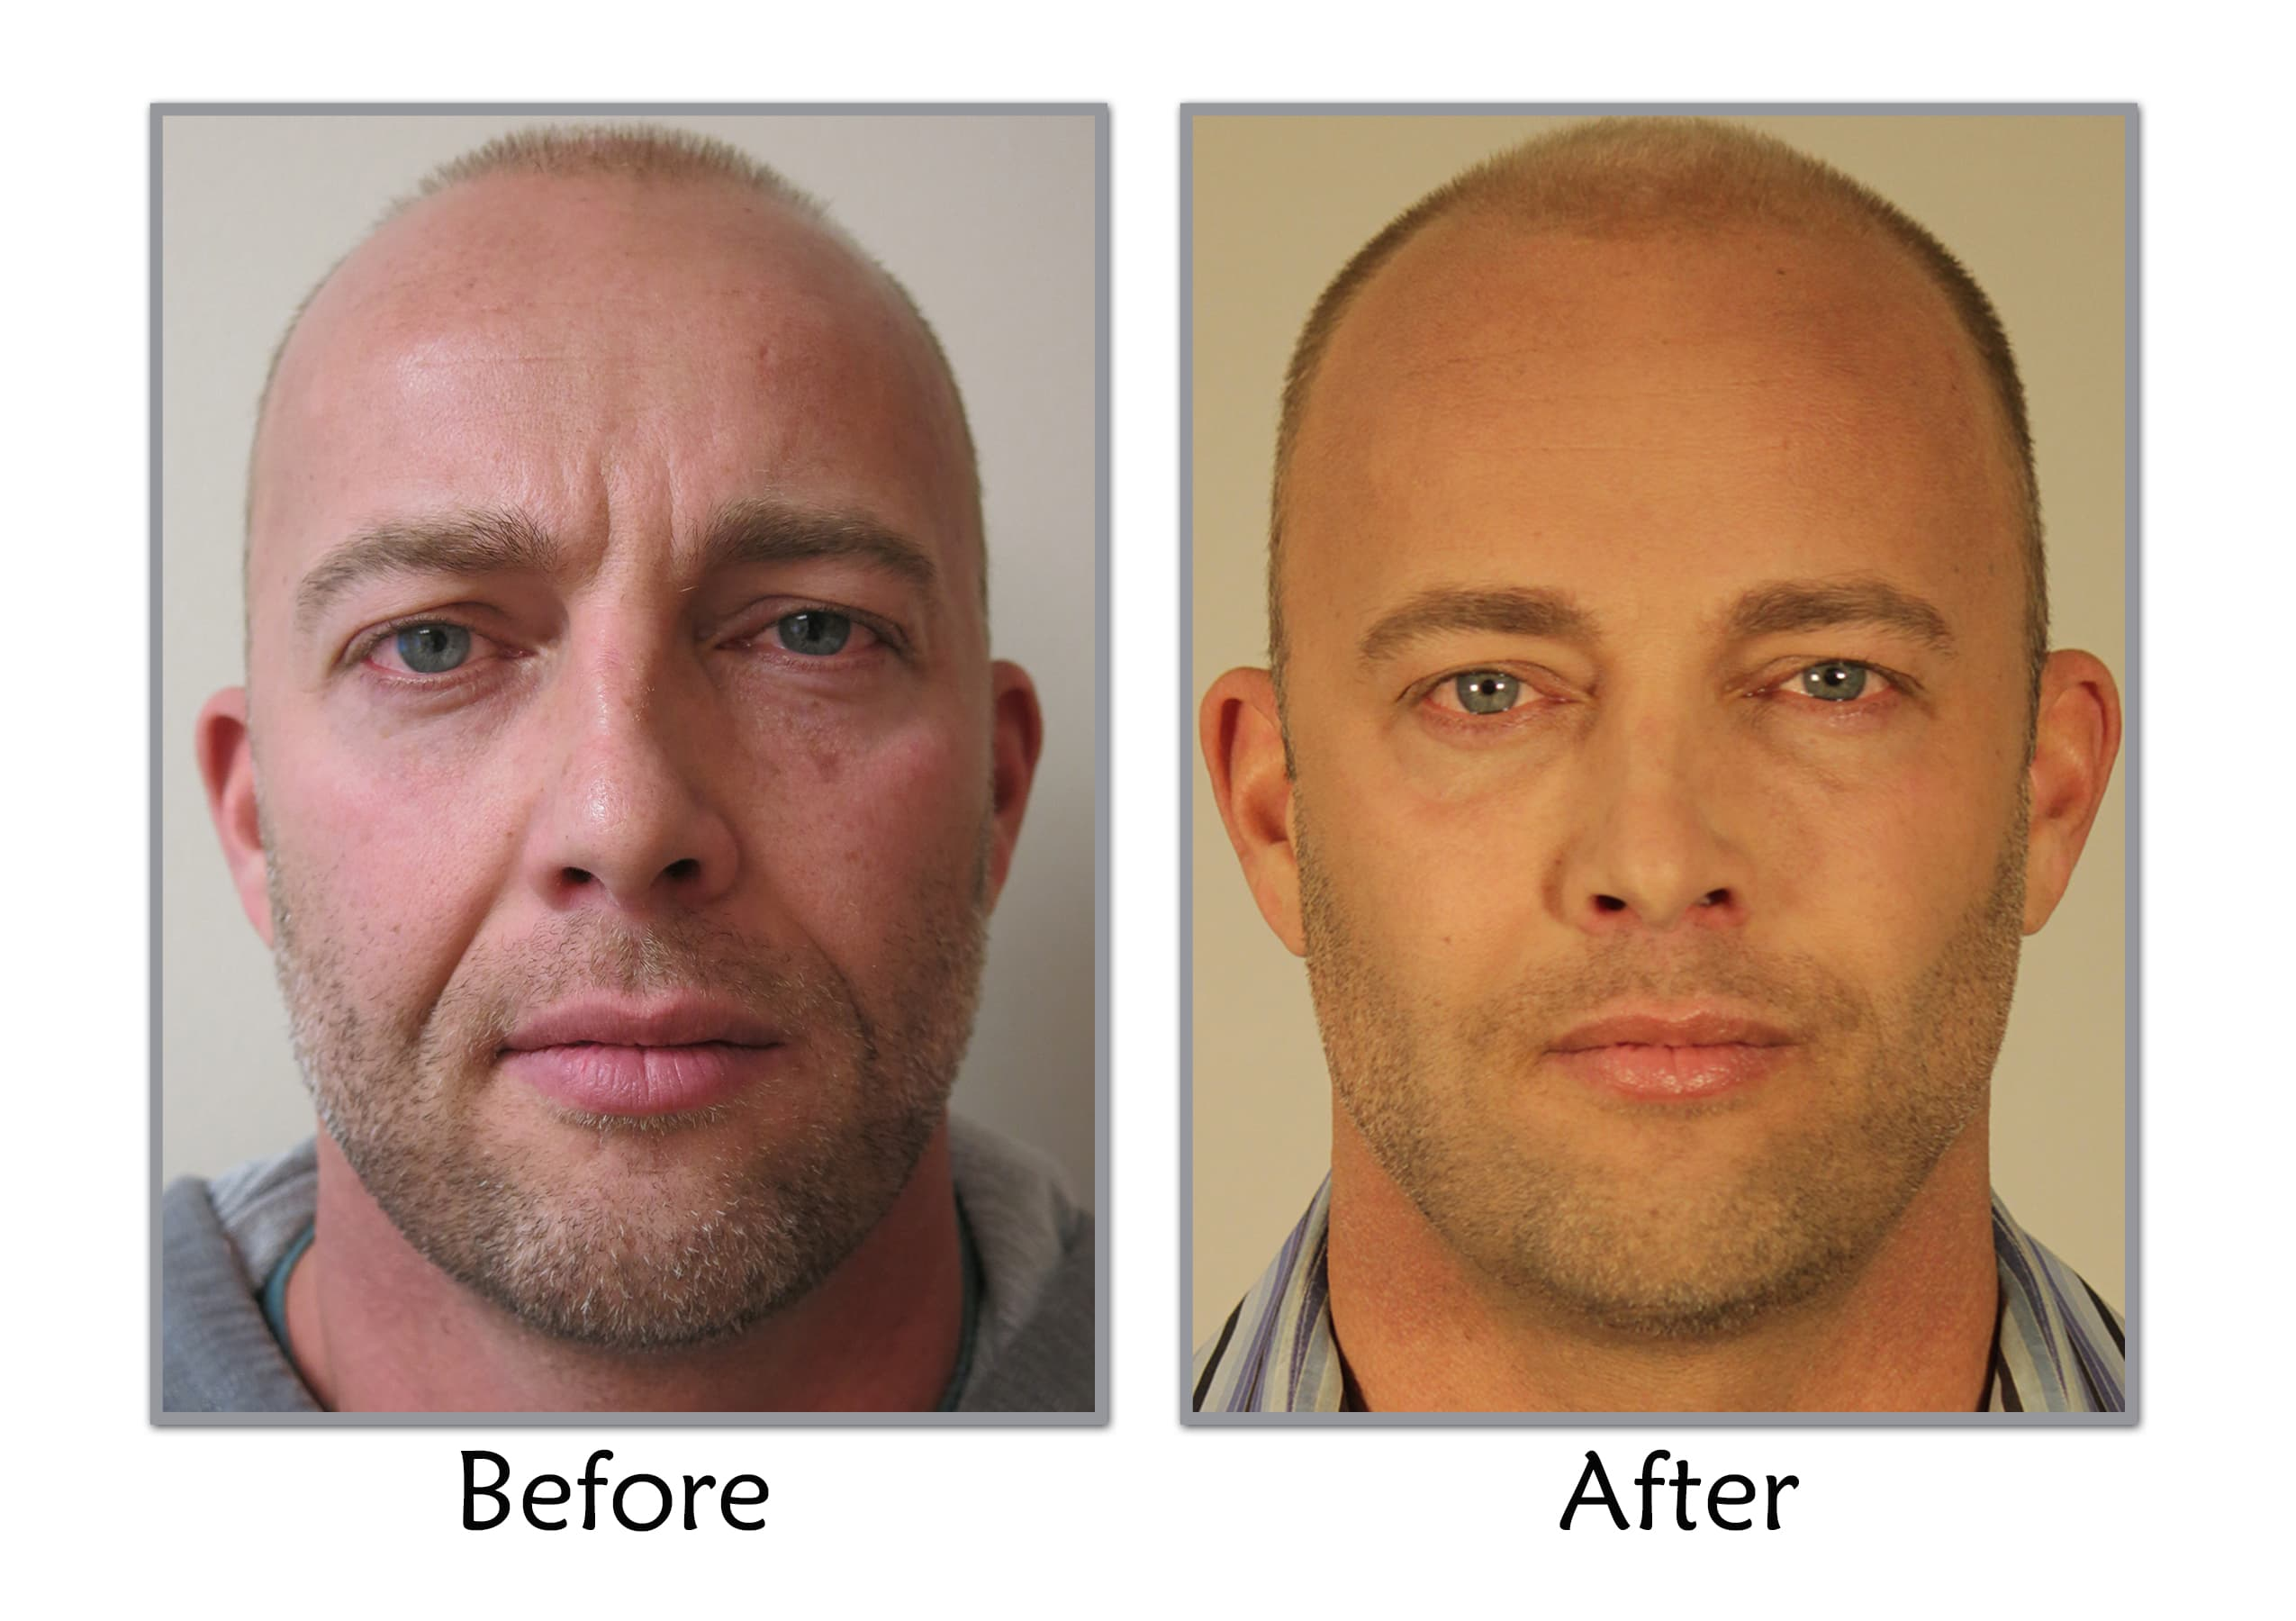 The Facial Plastic Surgery For Men In Turkey Before And After Pictures 1